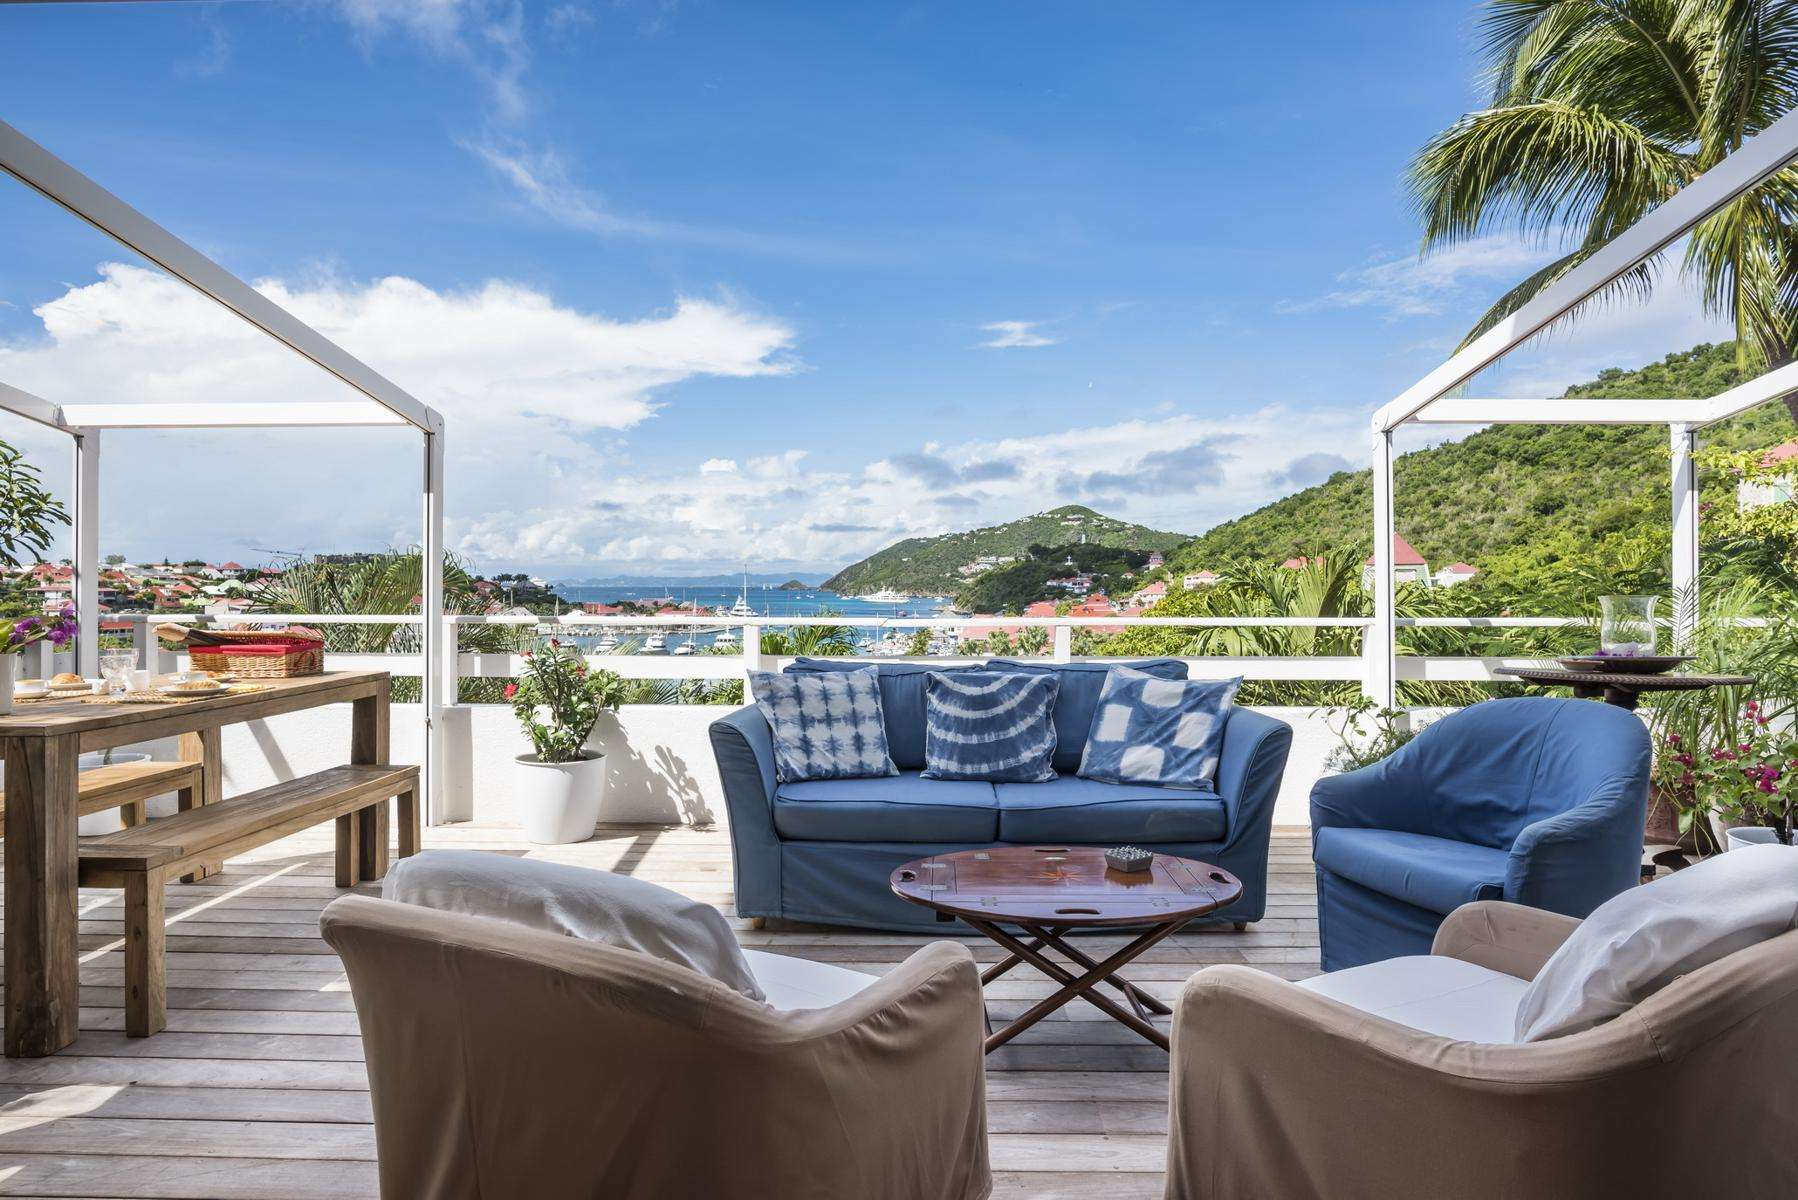 Luxury villa rentals caribbean - St barthelemy - Gustavia - Colony Club D4  | View Star - Image 1/17